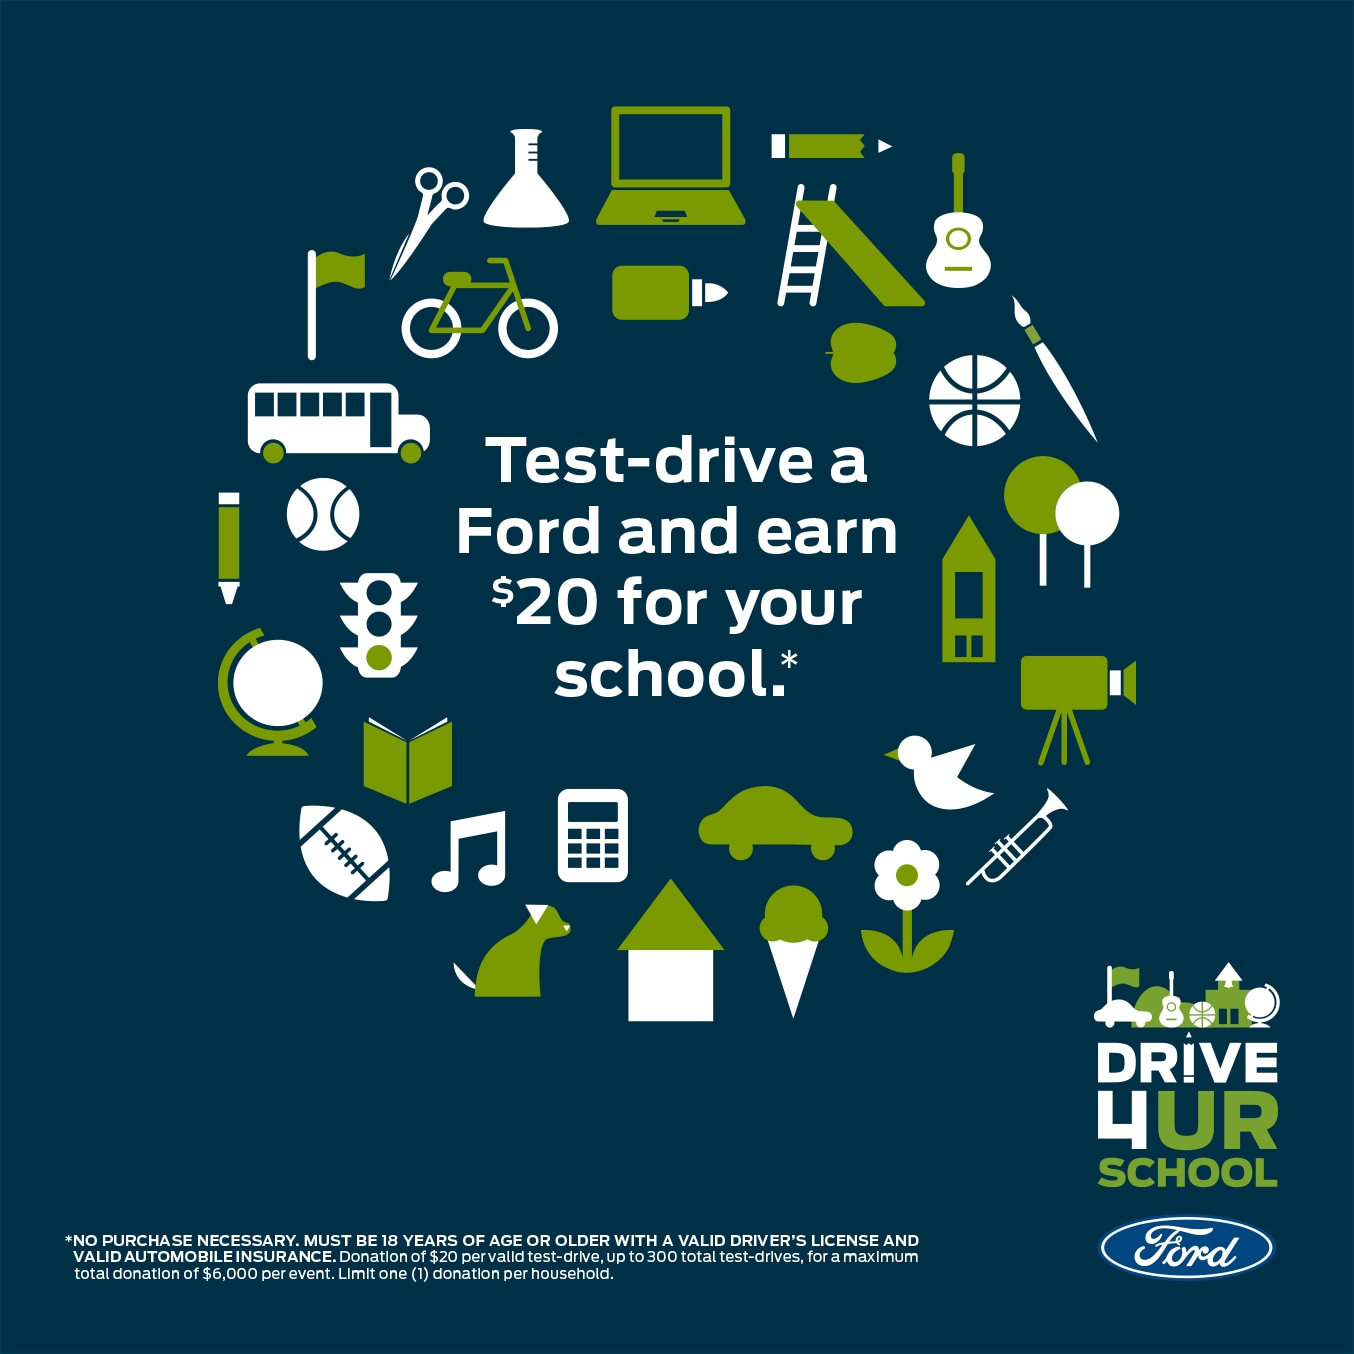 Ford Drive 4 UR School or community, Test drive a Ford and earn $20 for your group at Antelope Valley Ford